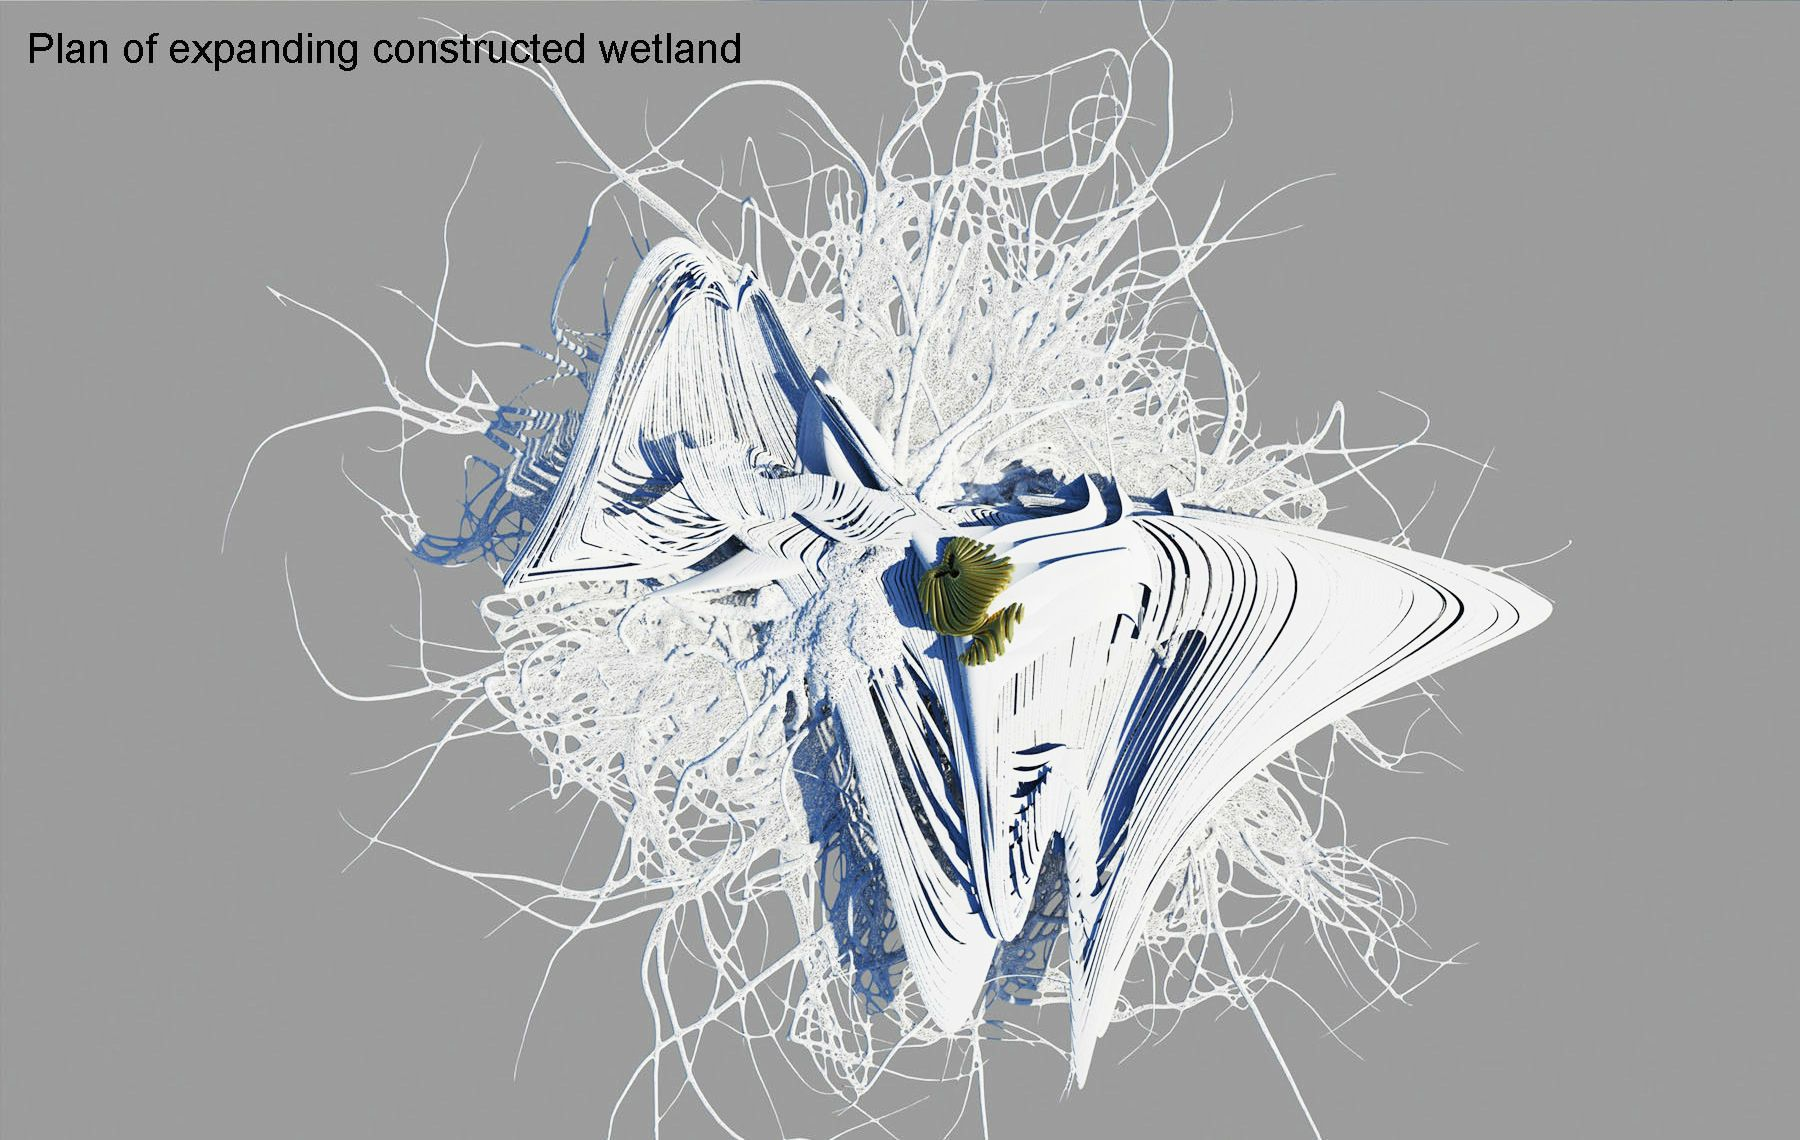 Constructed expanding Wetland Margot Krasojevic